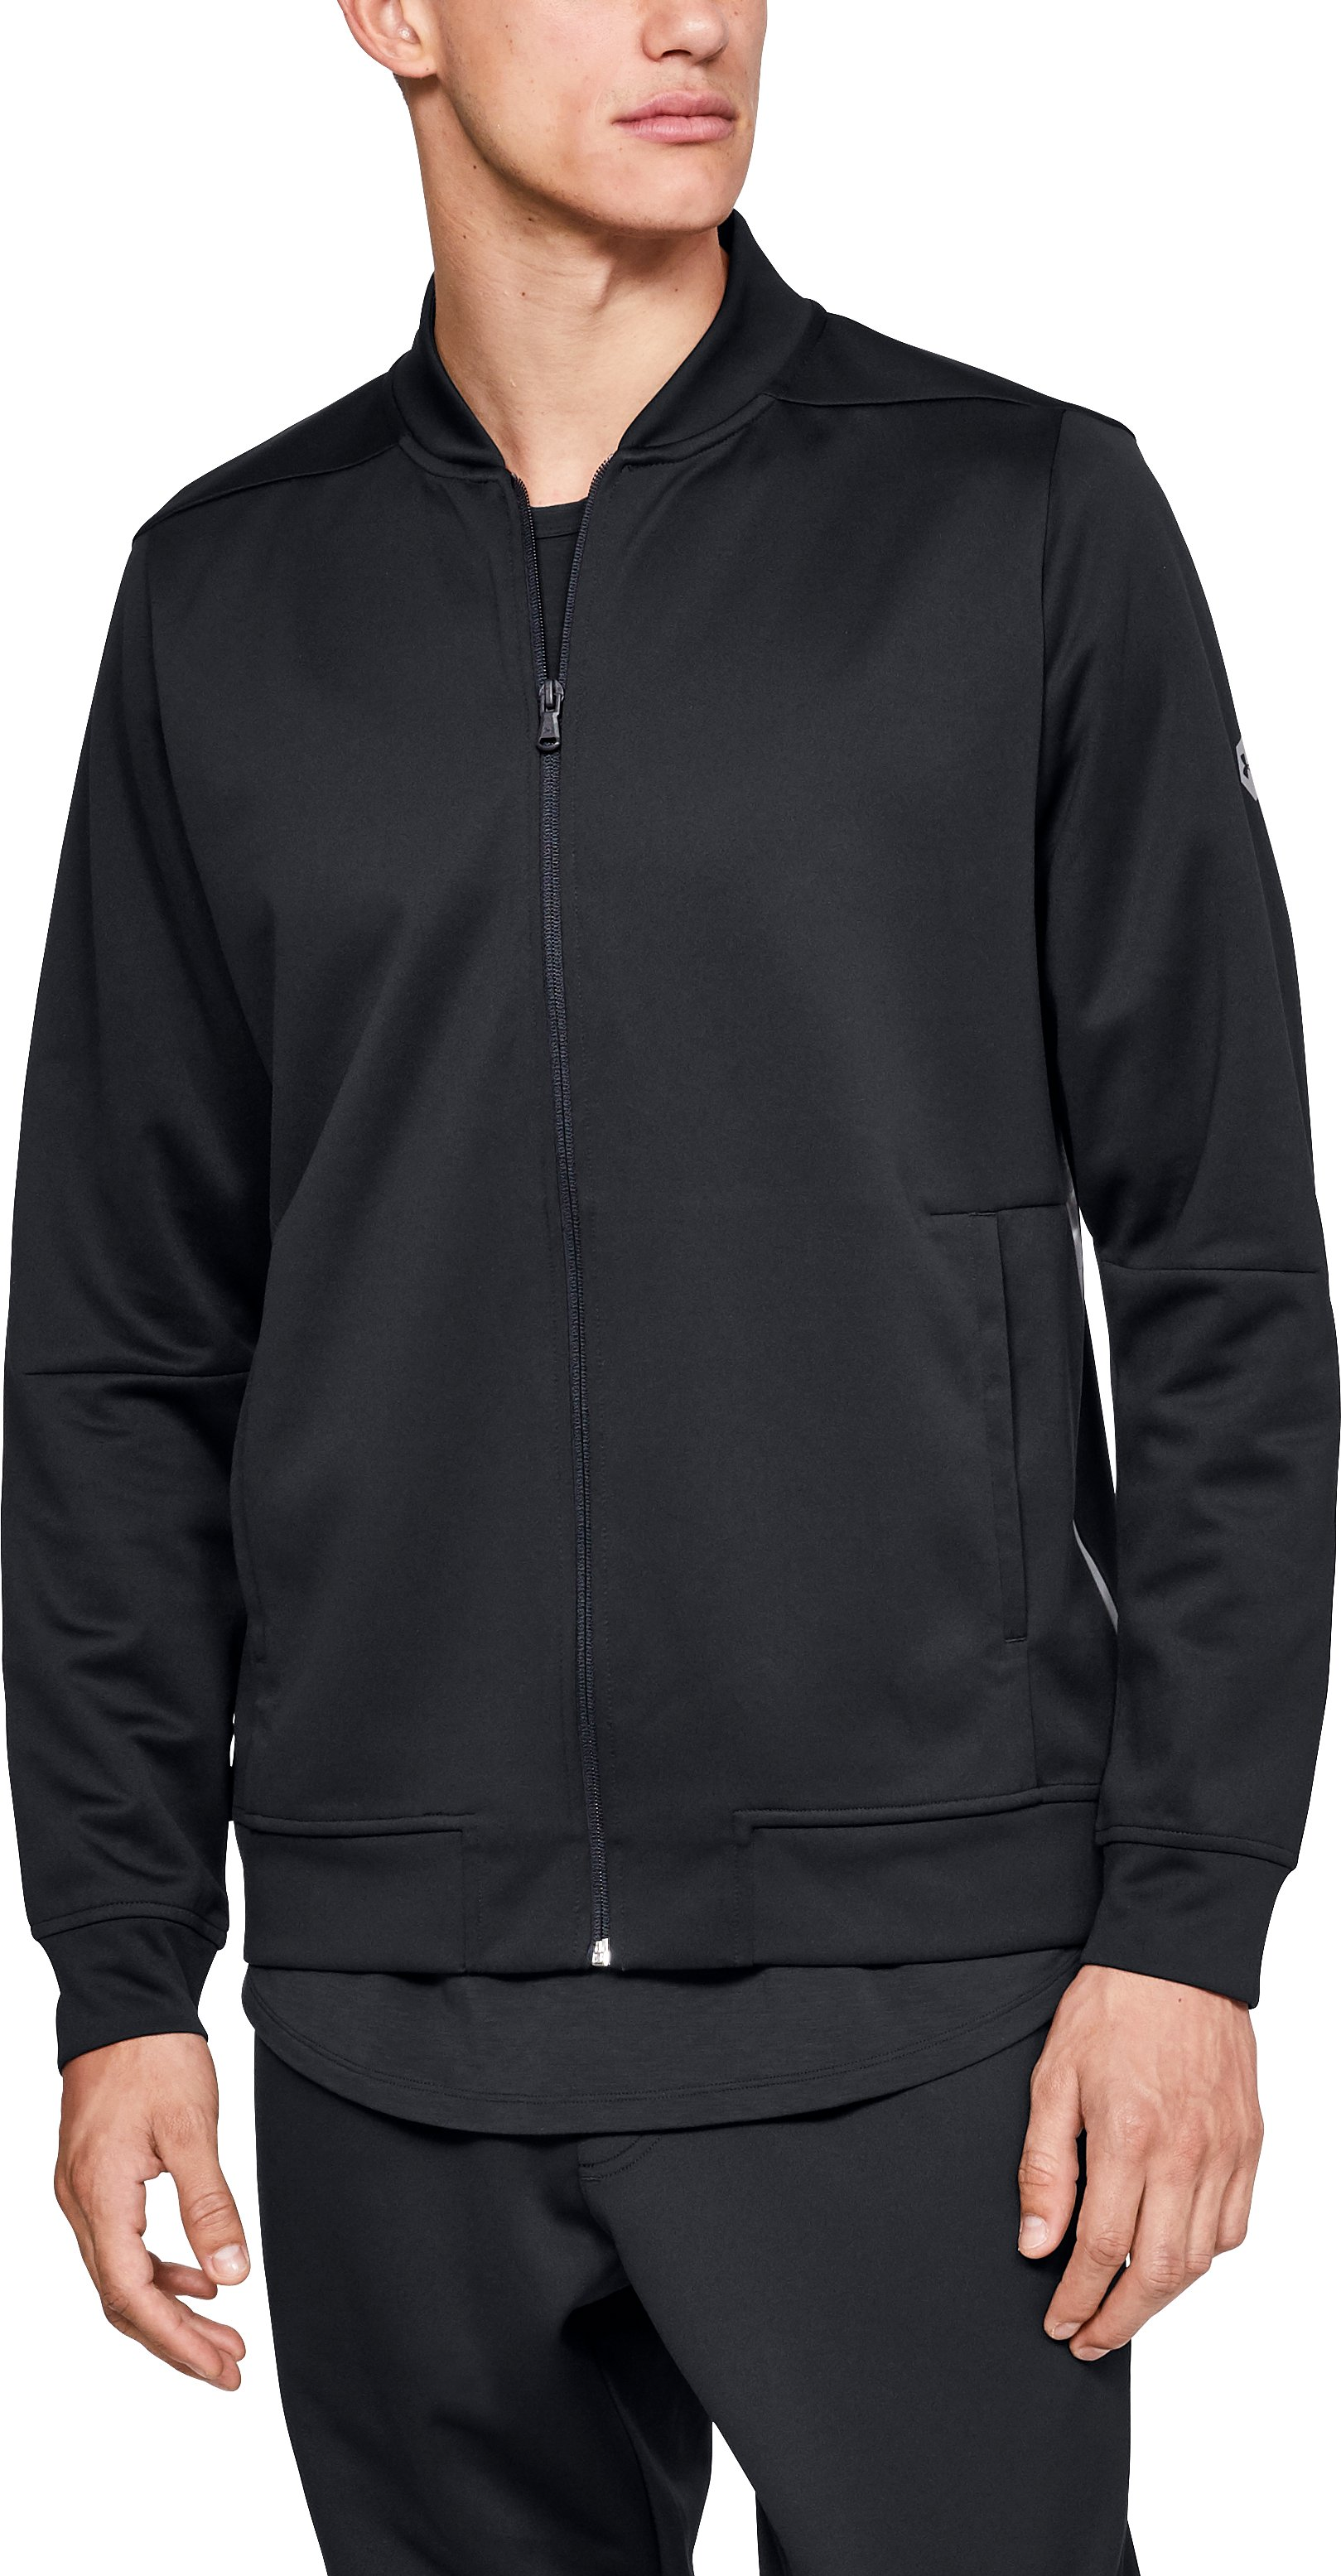 Men's Athlete Recovery Track Suit™ Jacket, Black